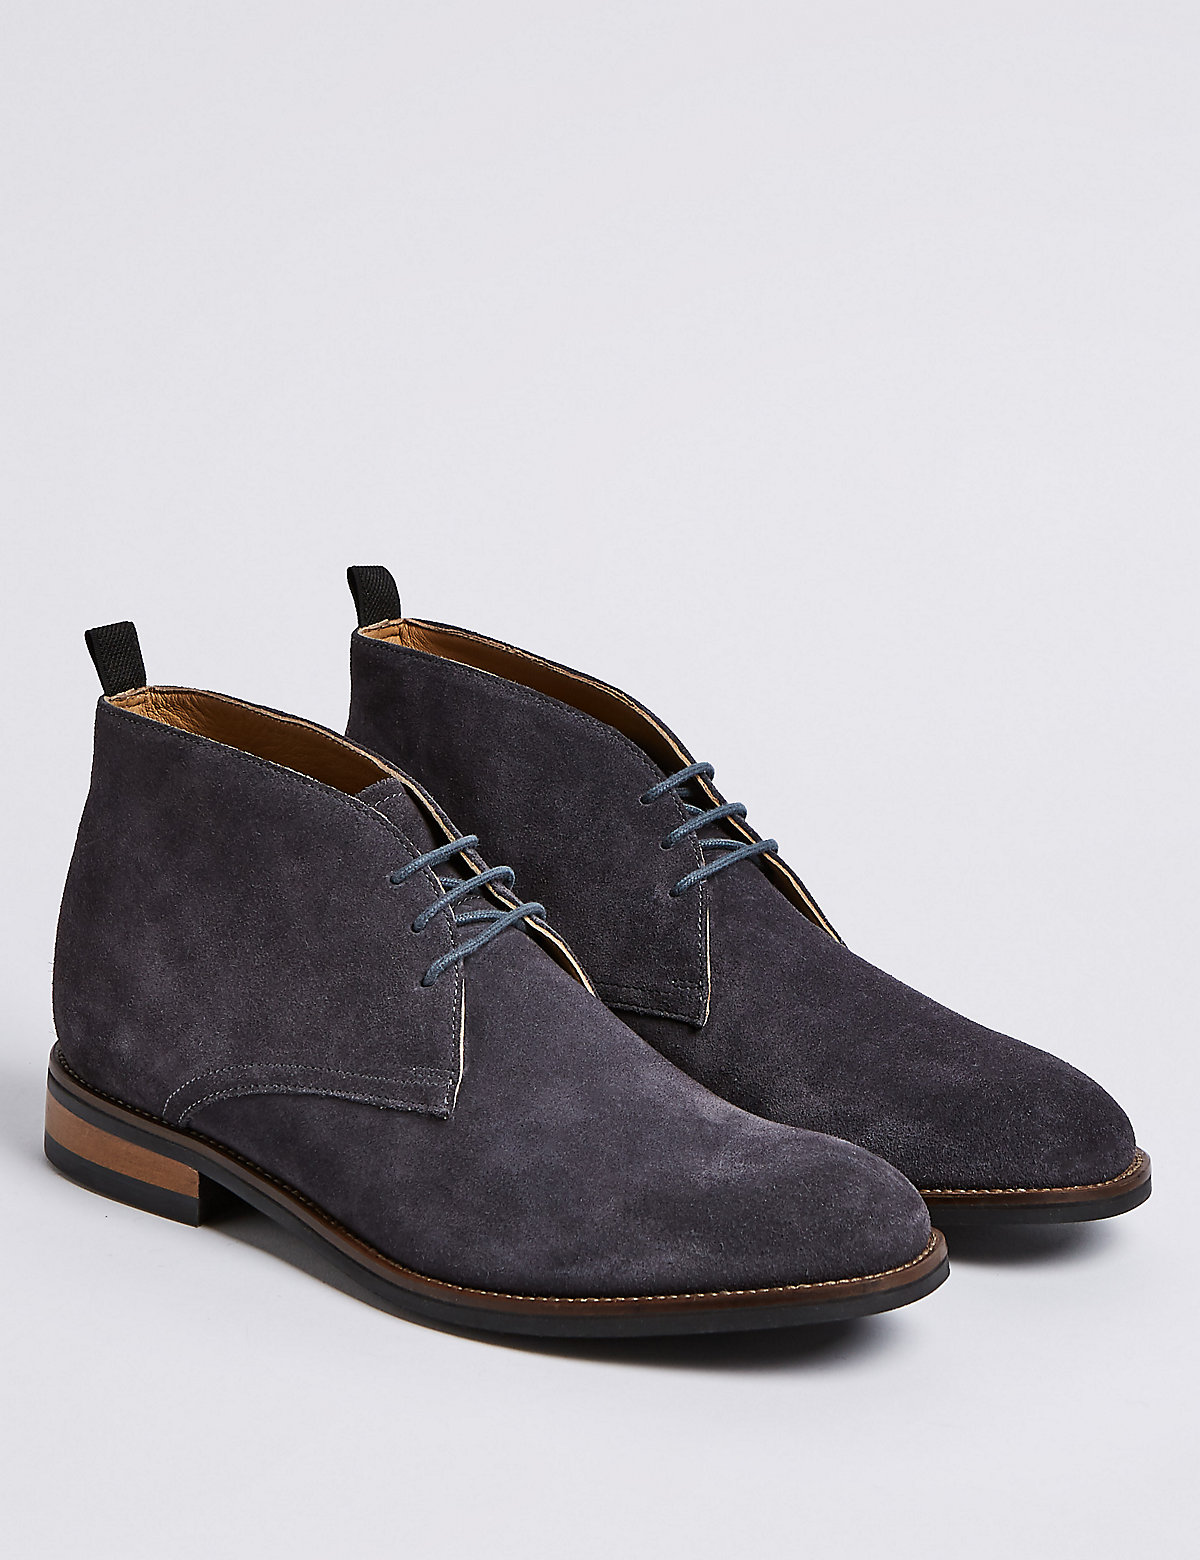 Marks & Spencer Grey Suede Lace-up Chukka Boots